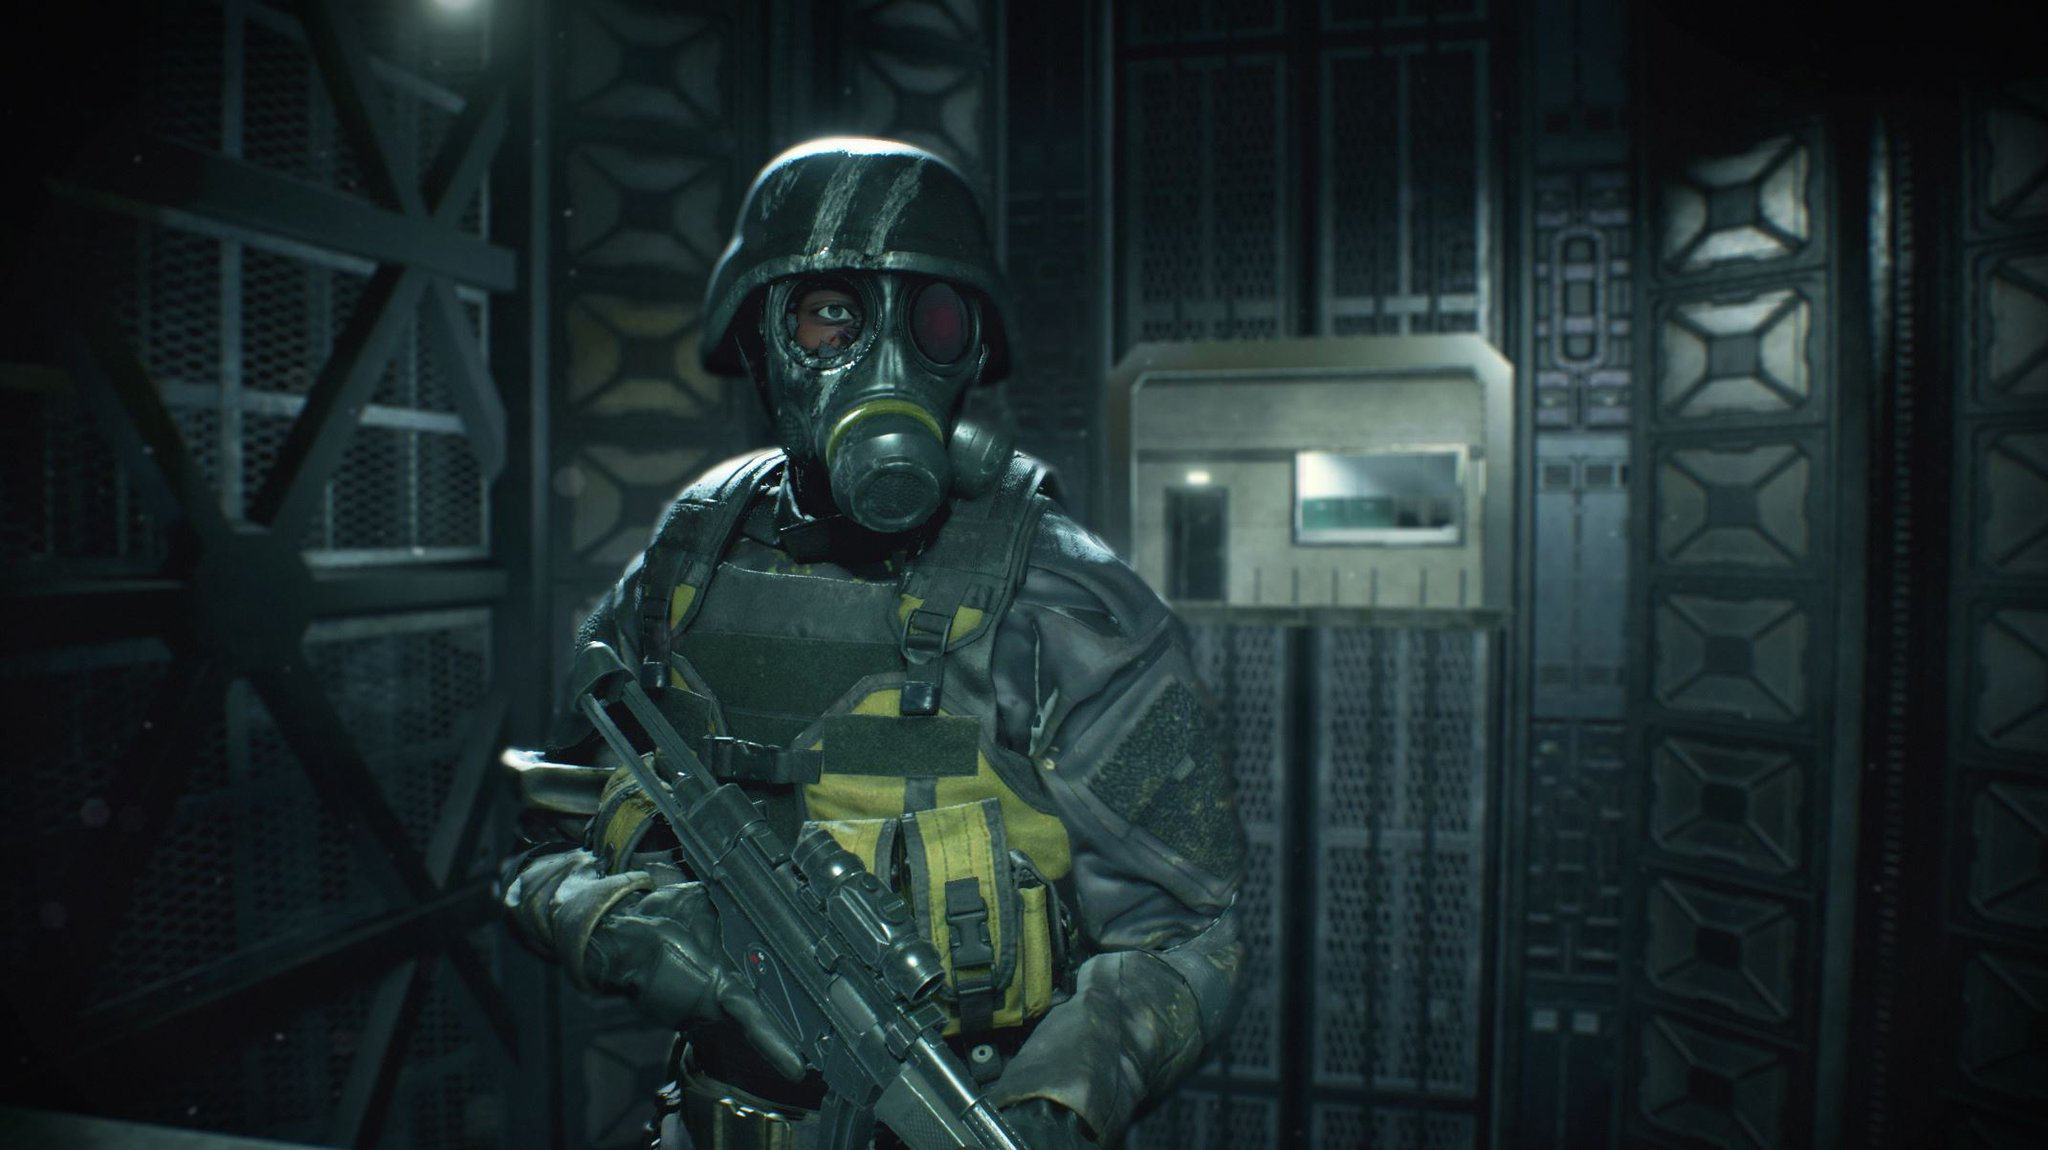 Resident Evil 2: The Ghost Survivors Free Update Detailed, Features